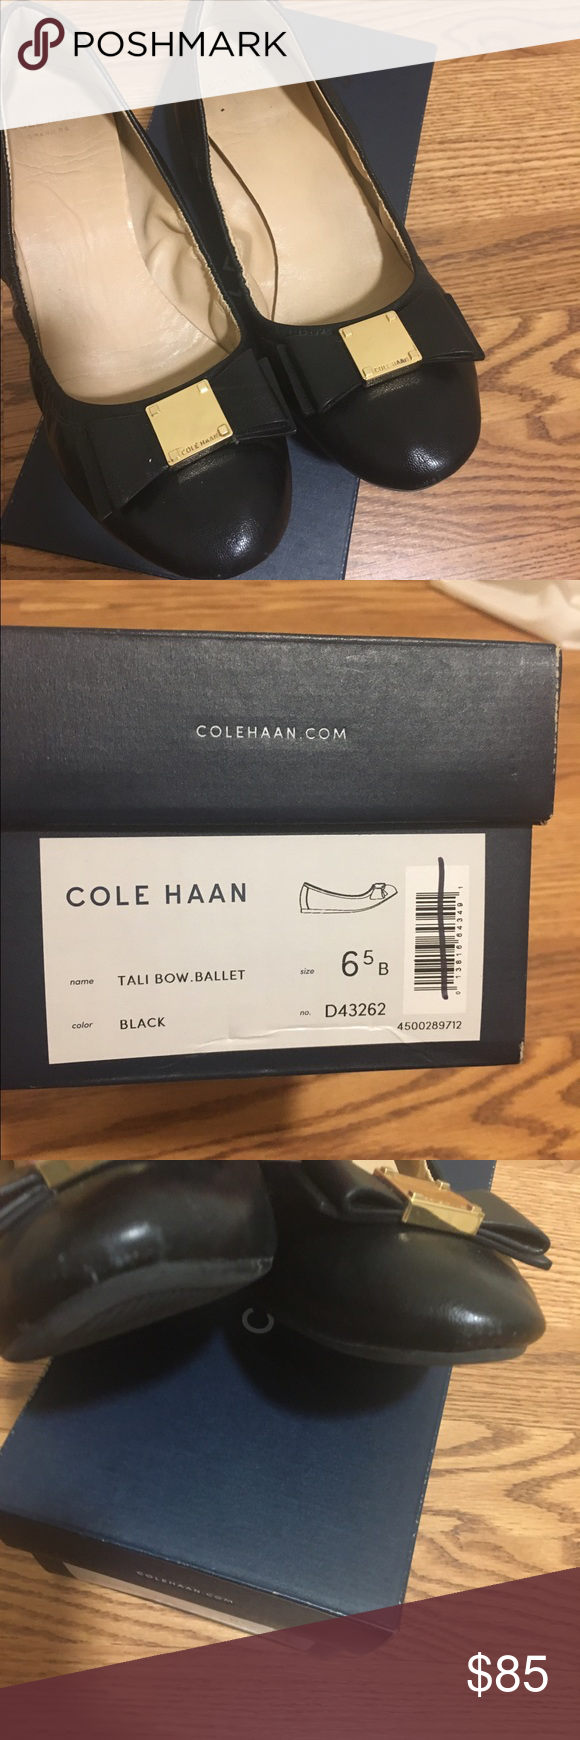 Cole Haan Tali Bow Flat Black, size 6.5 in good condition!   A feminine bow and gold Cole Haan signature hardware adorn its upper of buttery leather, while its base boasts both a half-inch micro wedge and a footbed padded. Pair with slim-fit trousers and a silk blouse for work, or skinny jeans and a soft knit for casual weekend wear. Smooth leather upper. Fully leather lined. Fully padded leather sock lining. Lightweight polyurethane mid-sole and rubber outsole. Cushioned with Grand.OS…